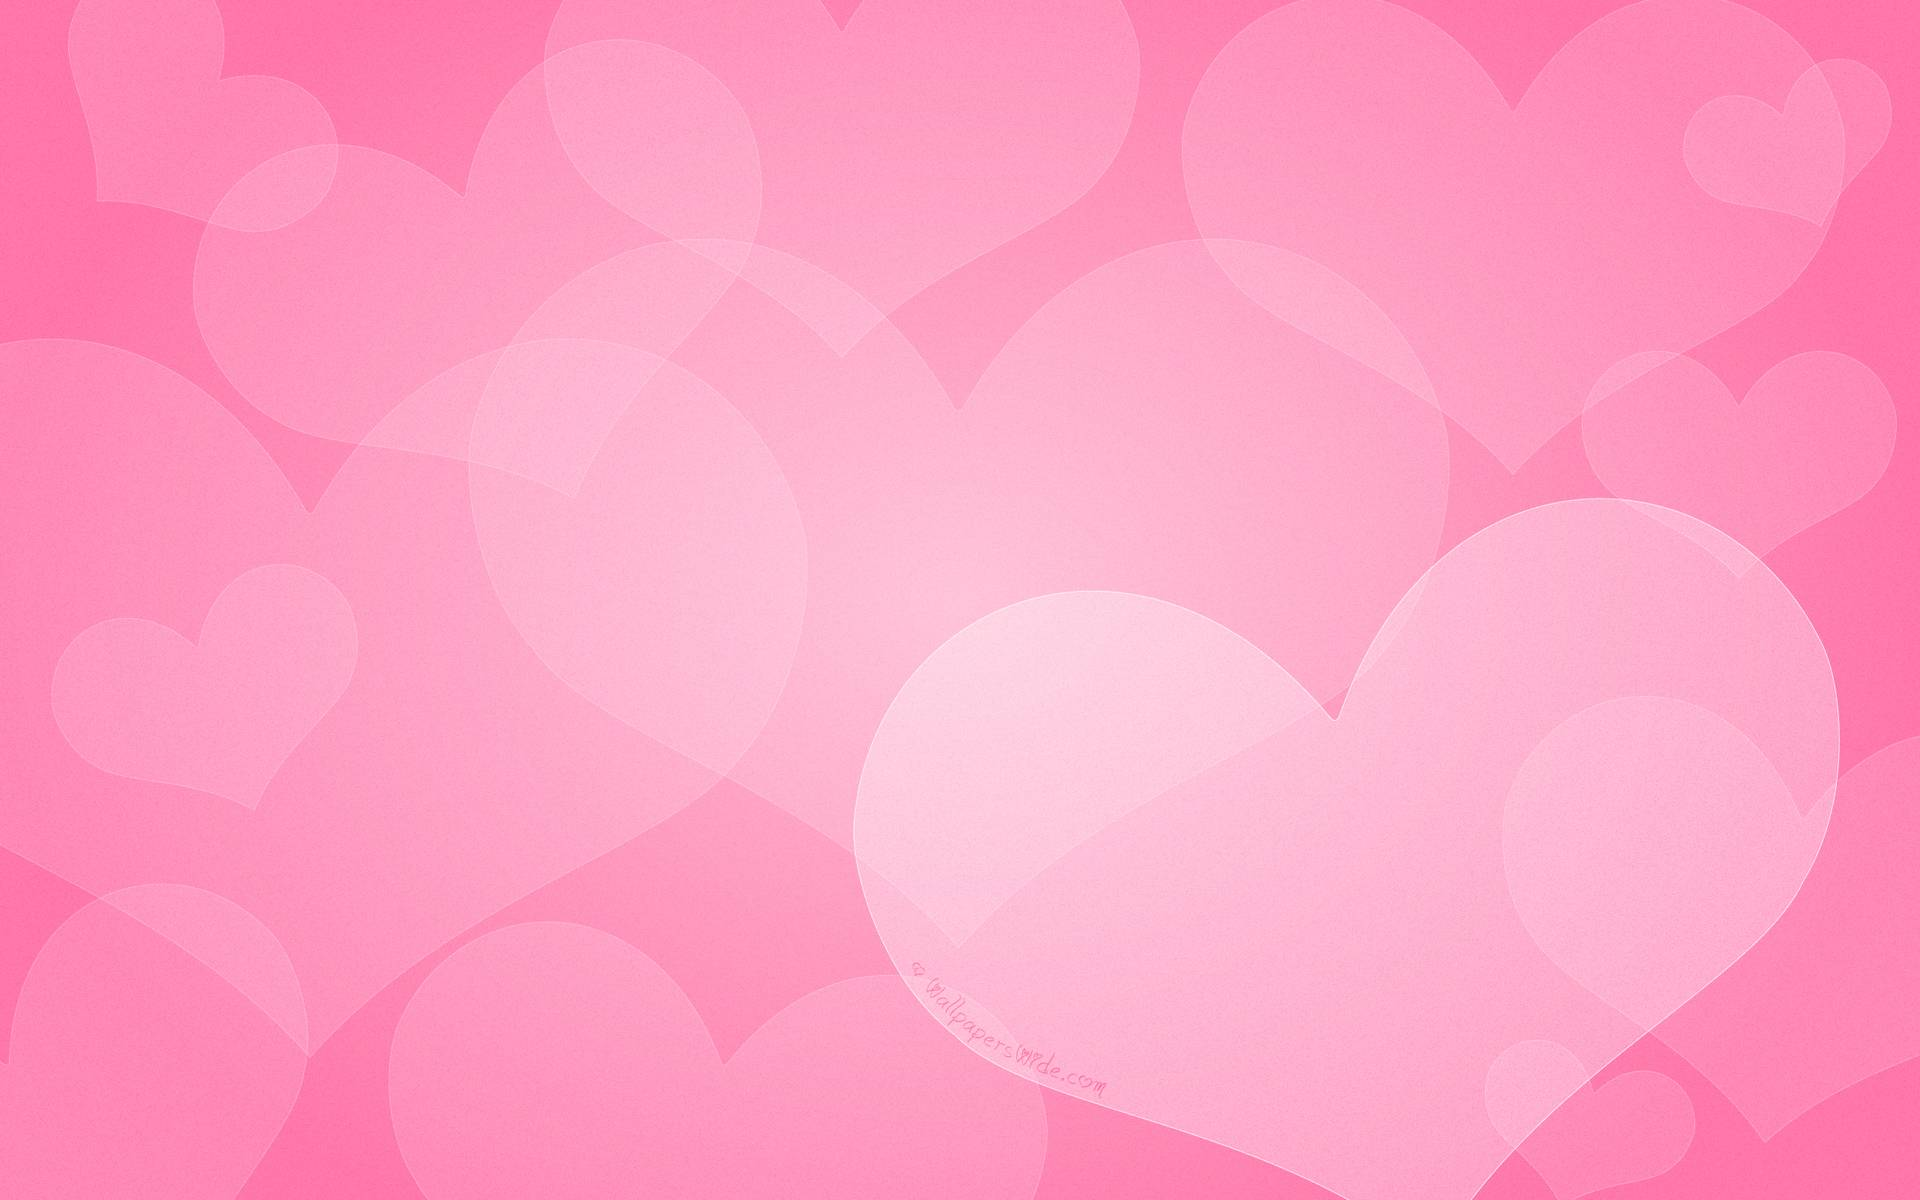 Valentines Day Desktop Backgrounds - Wallpaper Cave